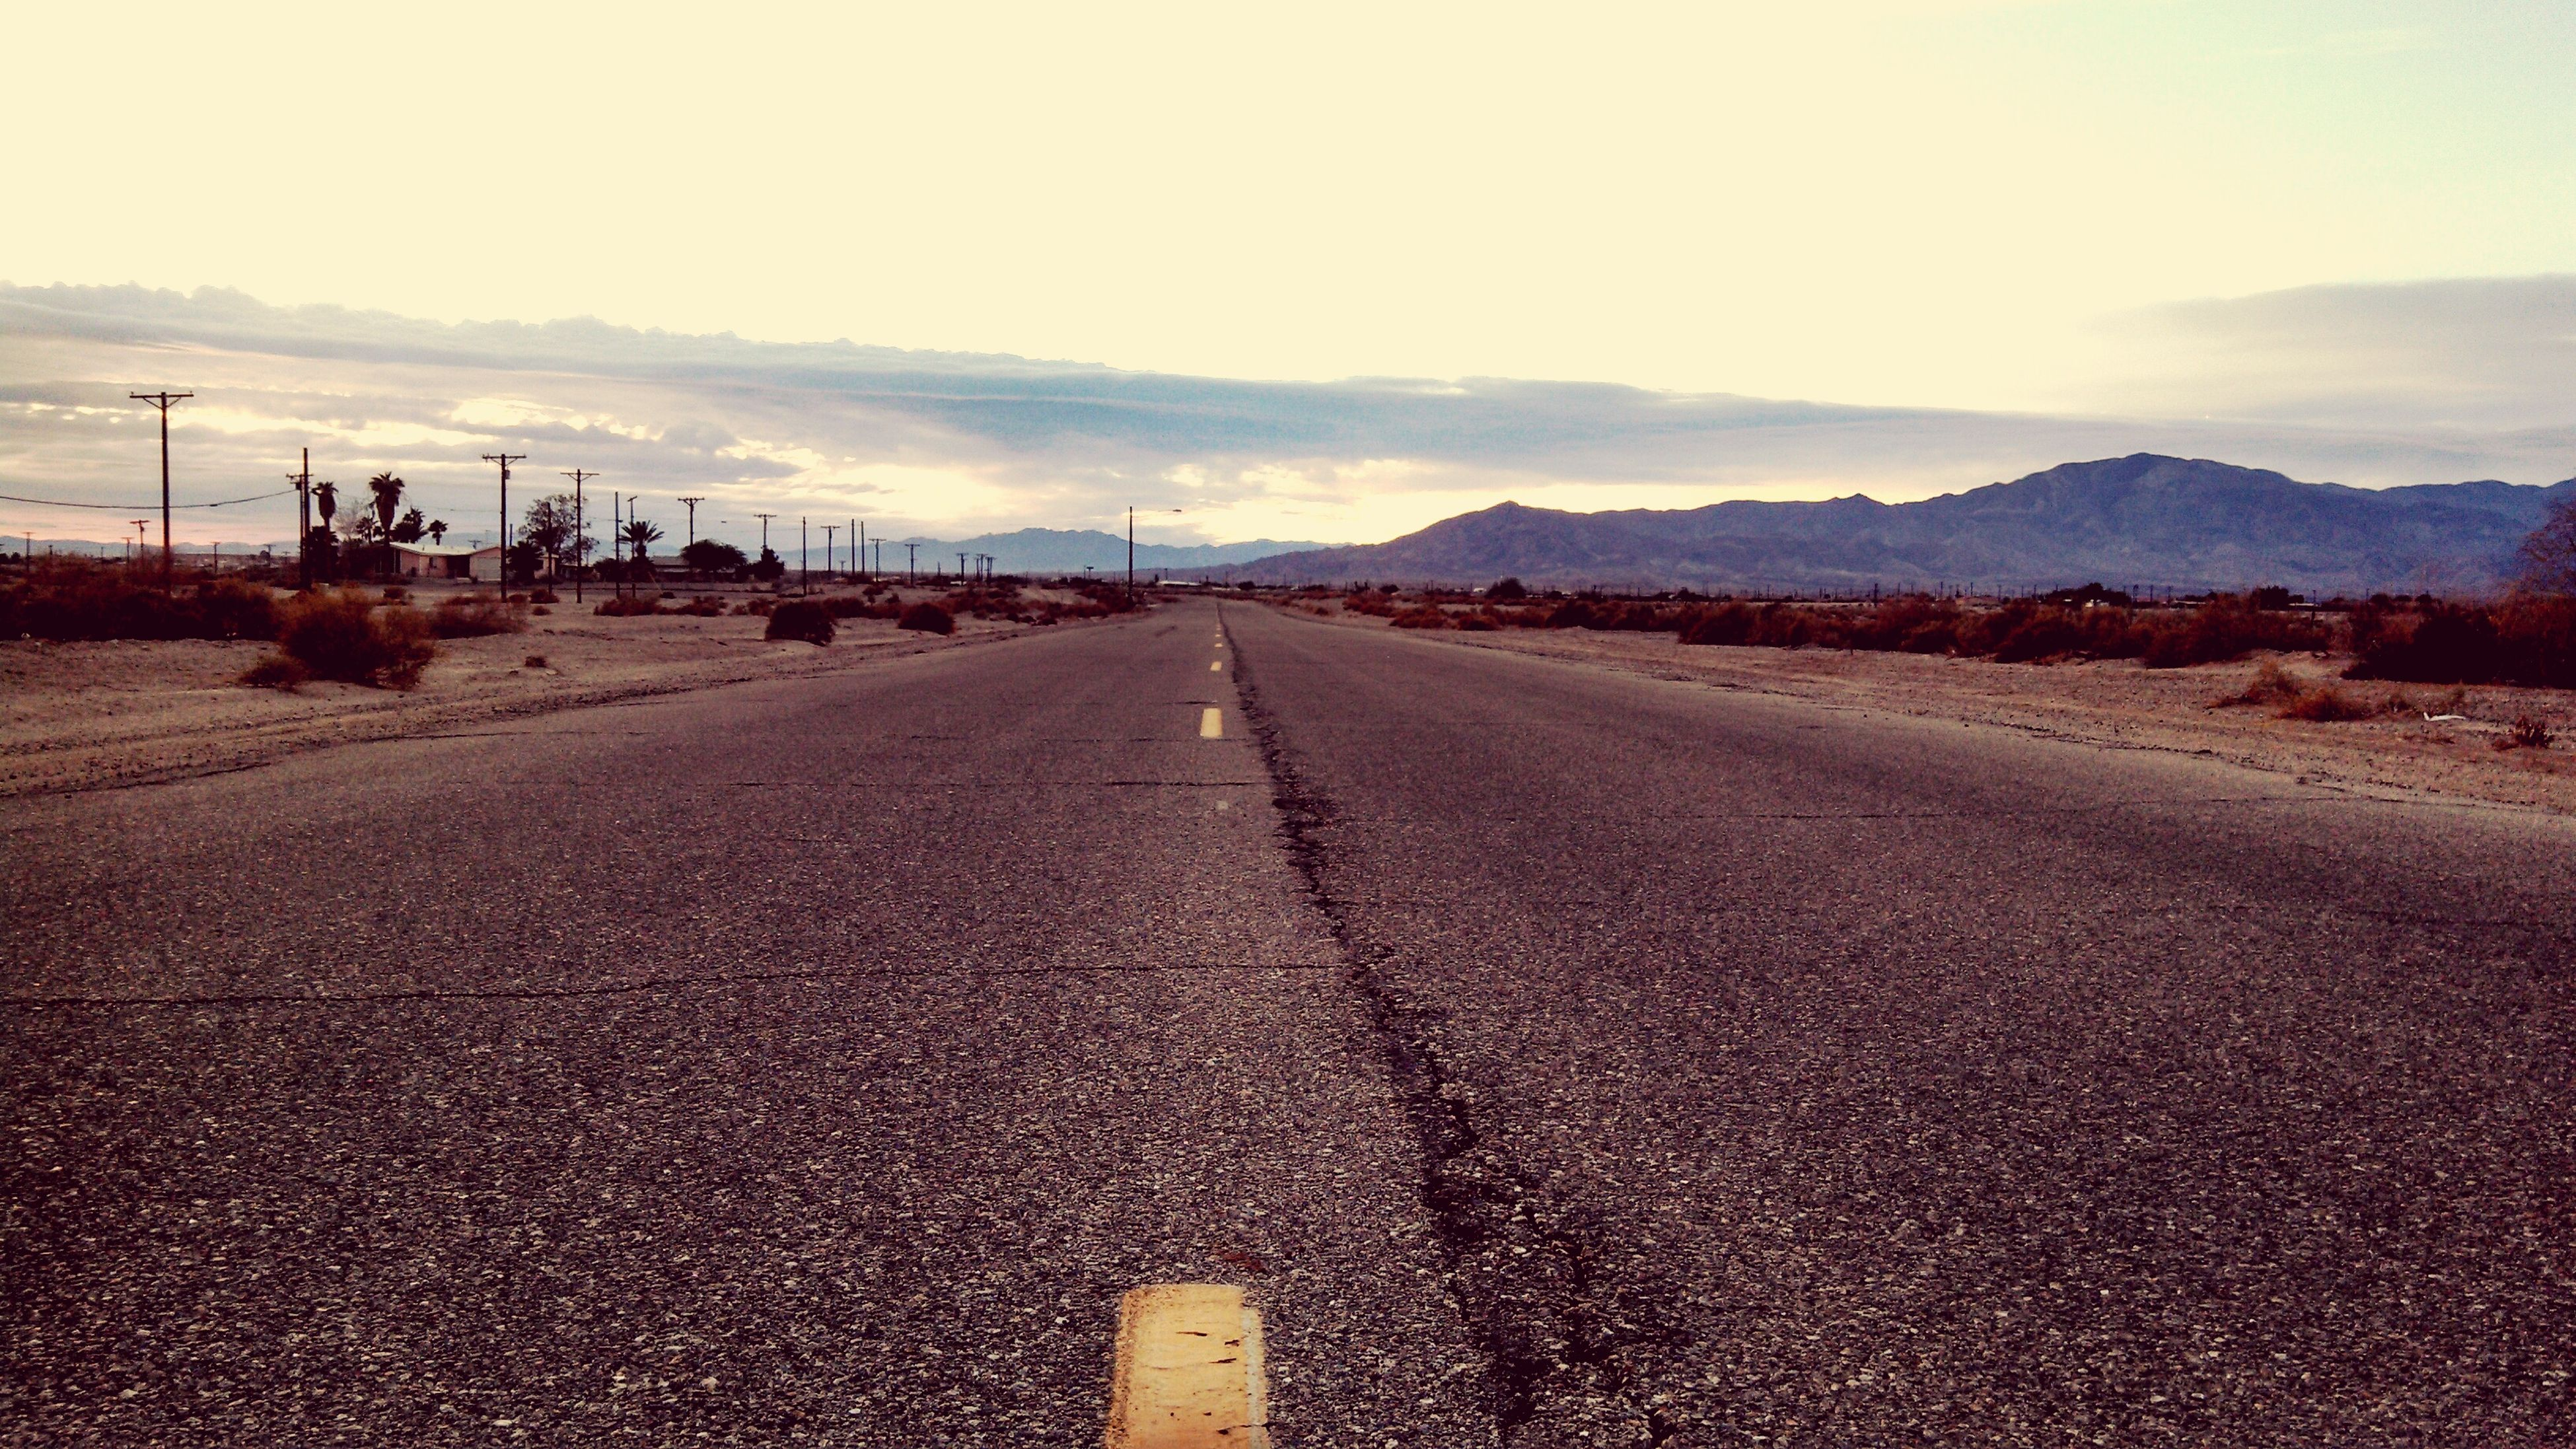 the way forward, road, sky, mountain, transportation, diminishing perspective, road marking, landscape, tranquil scene, vanishing point, tranquility, asphalt, mountain range, scenics, empty, country road, cloud - sky, nature, empty road, beauty in nature